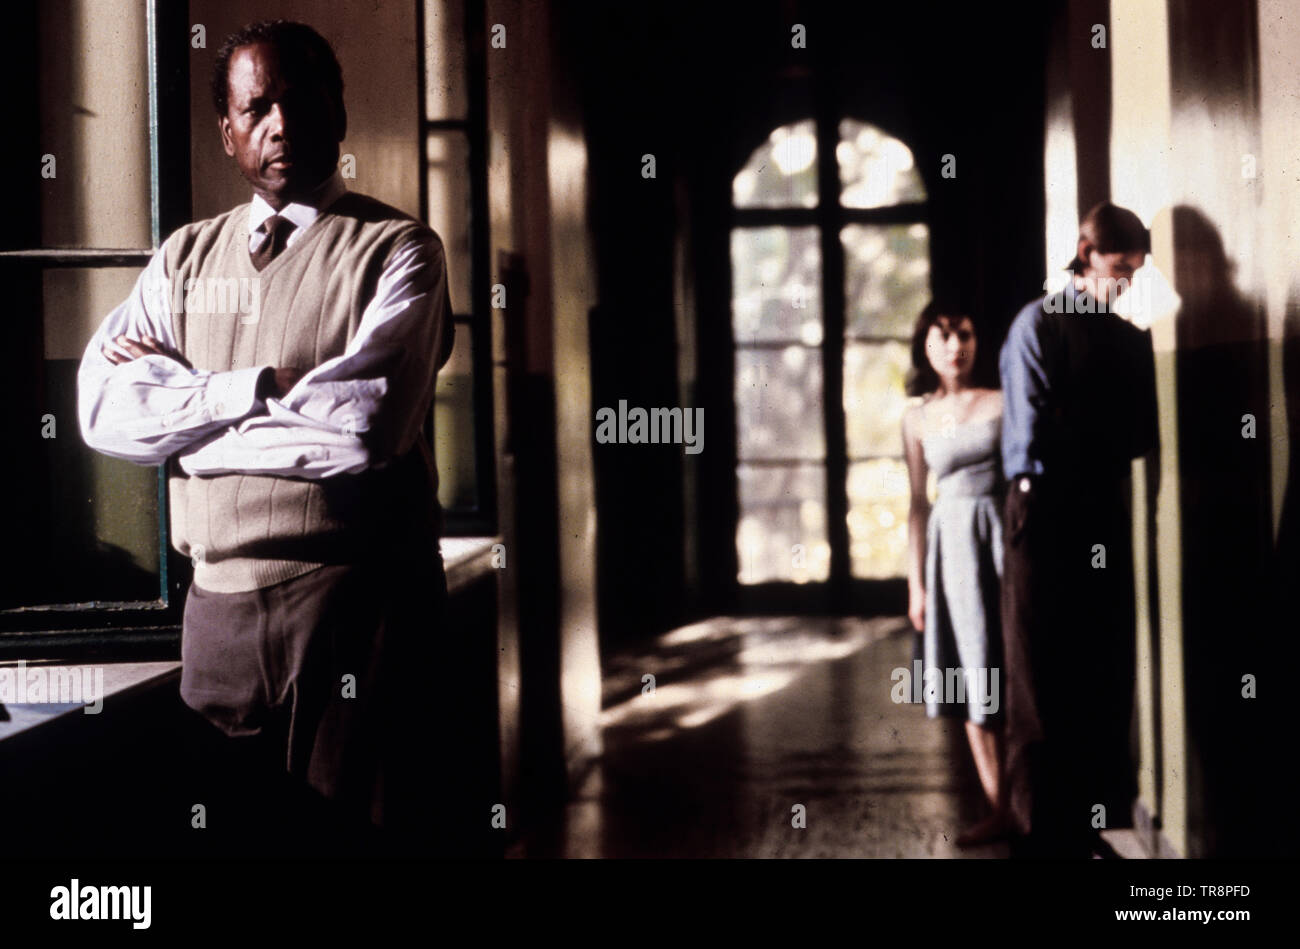 sydney poitier, brittany murphy, david and lisa, 1998 - Stock Image